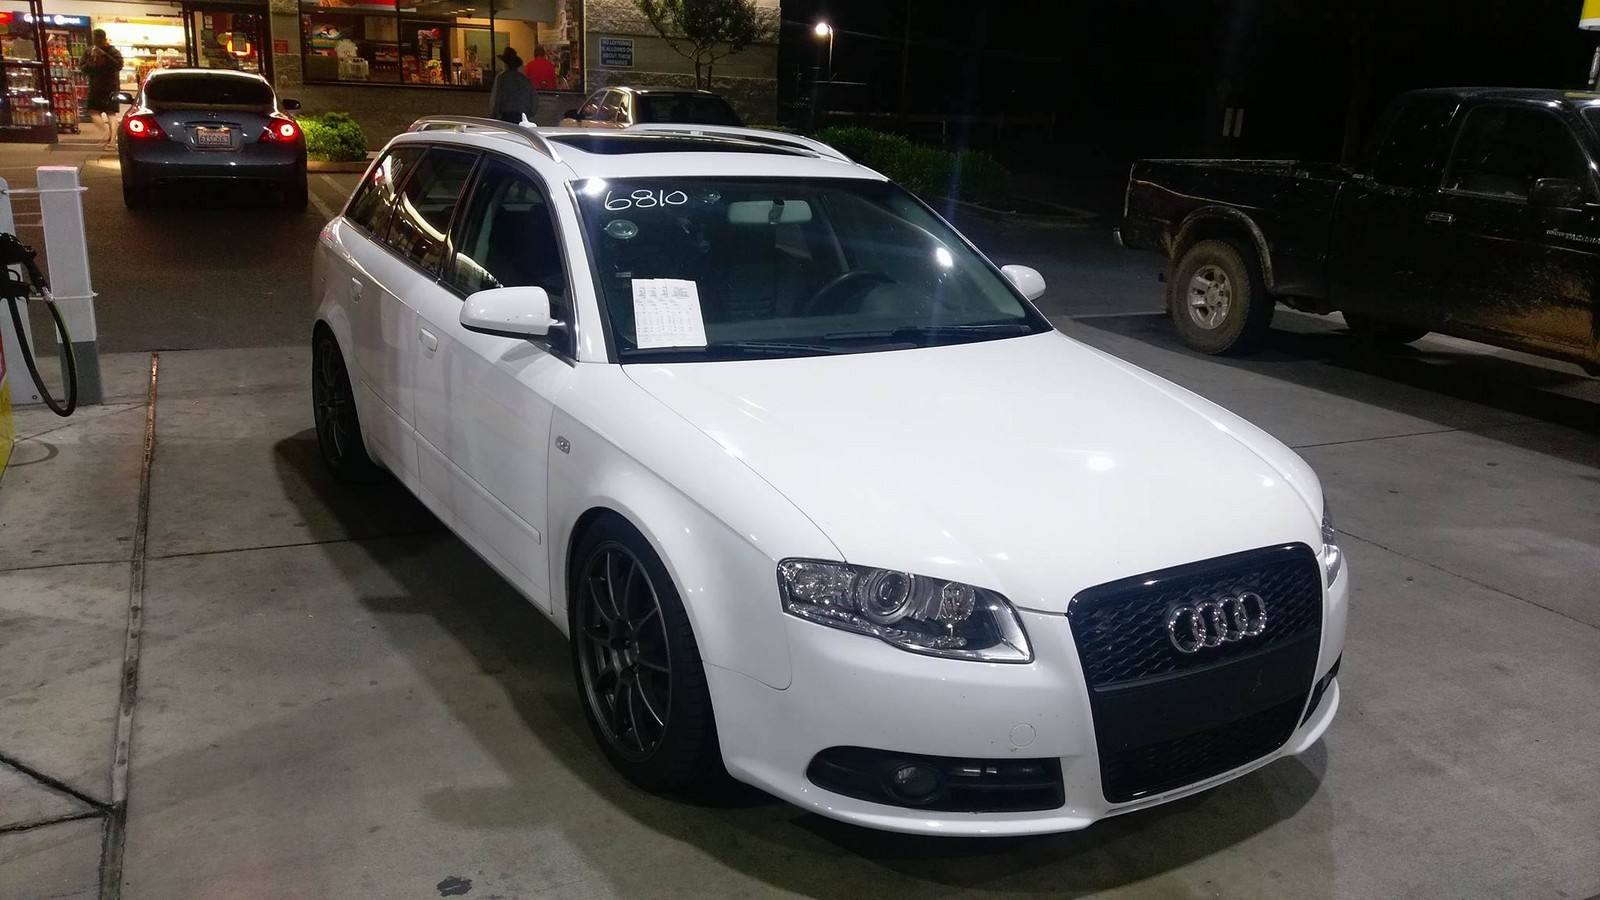 2007 Audi A4 Avant 1/4 mile trap sds 0-60 - DragTimes.com